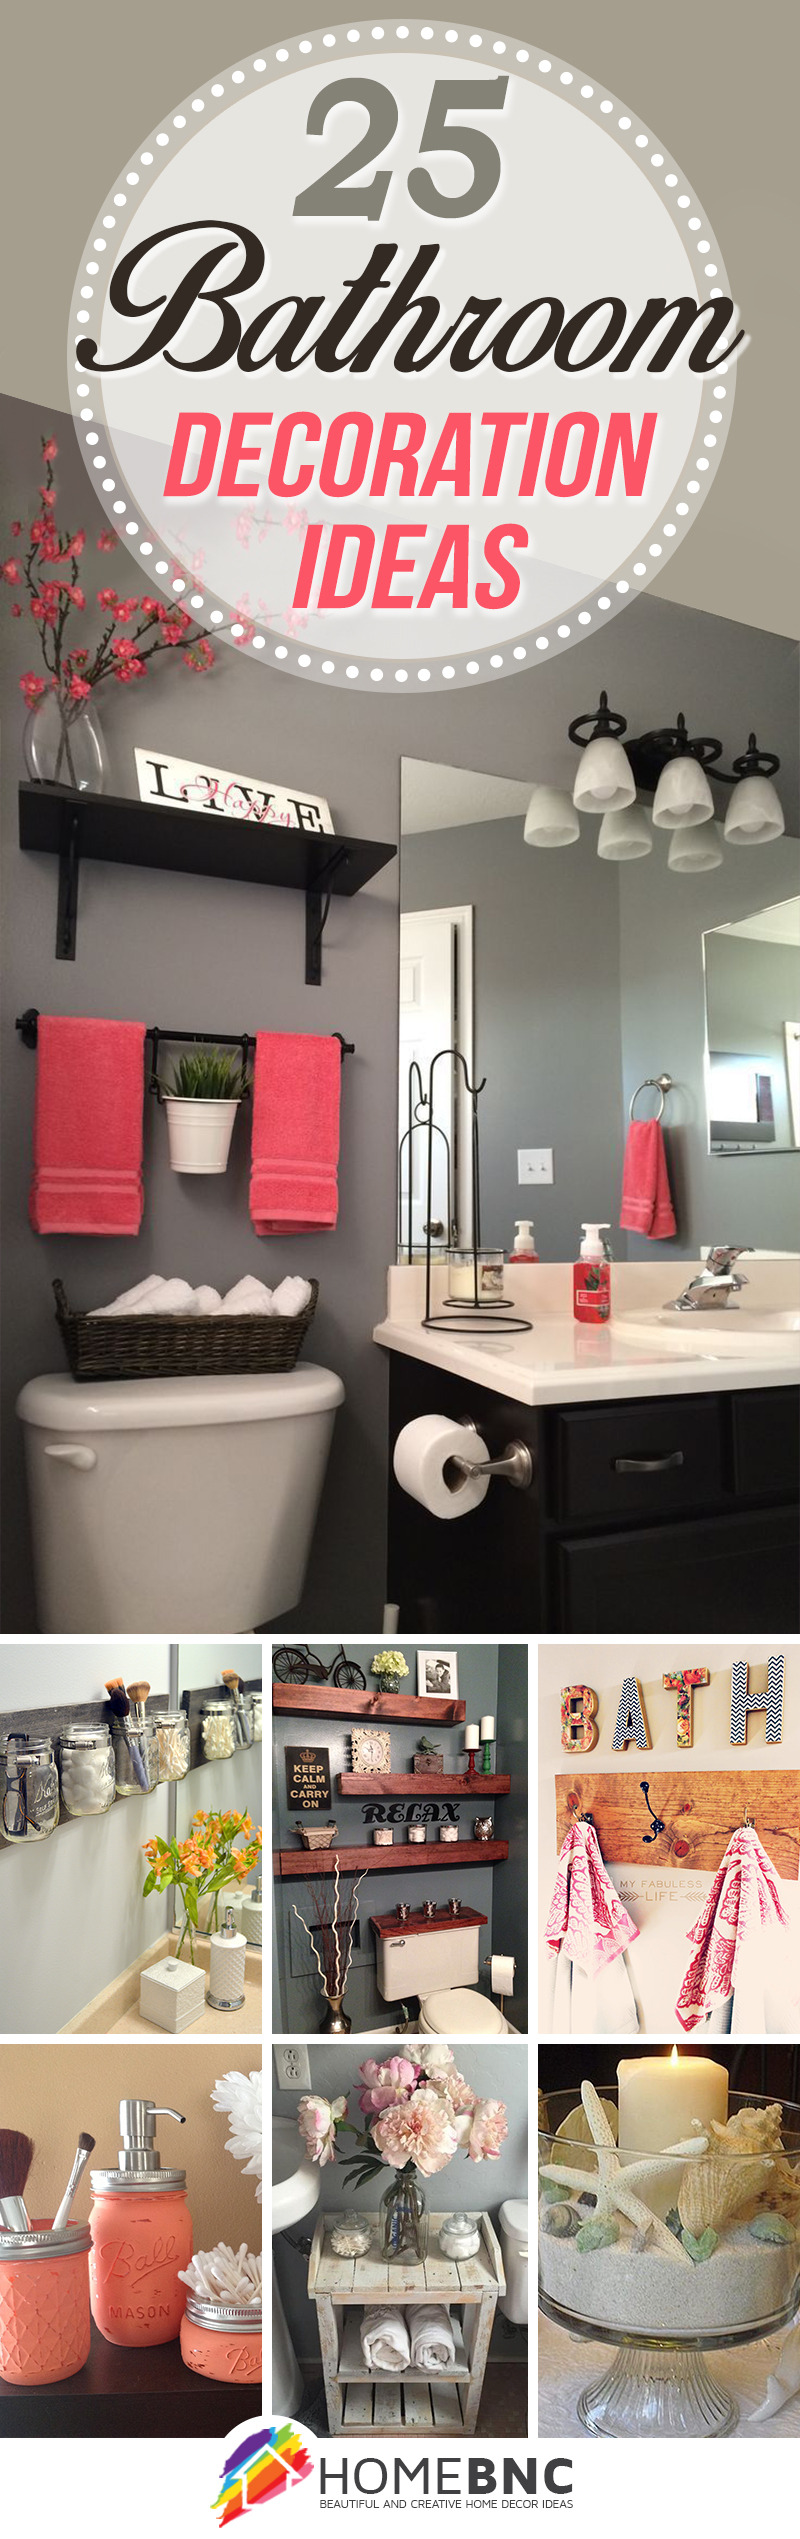 Cheap Ways to Decorate A Bathroom Lovely 25 Best Bathroom Decor Ideas and Designs that are Trendy In 2020